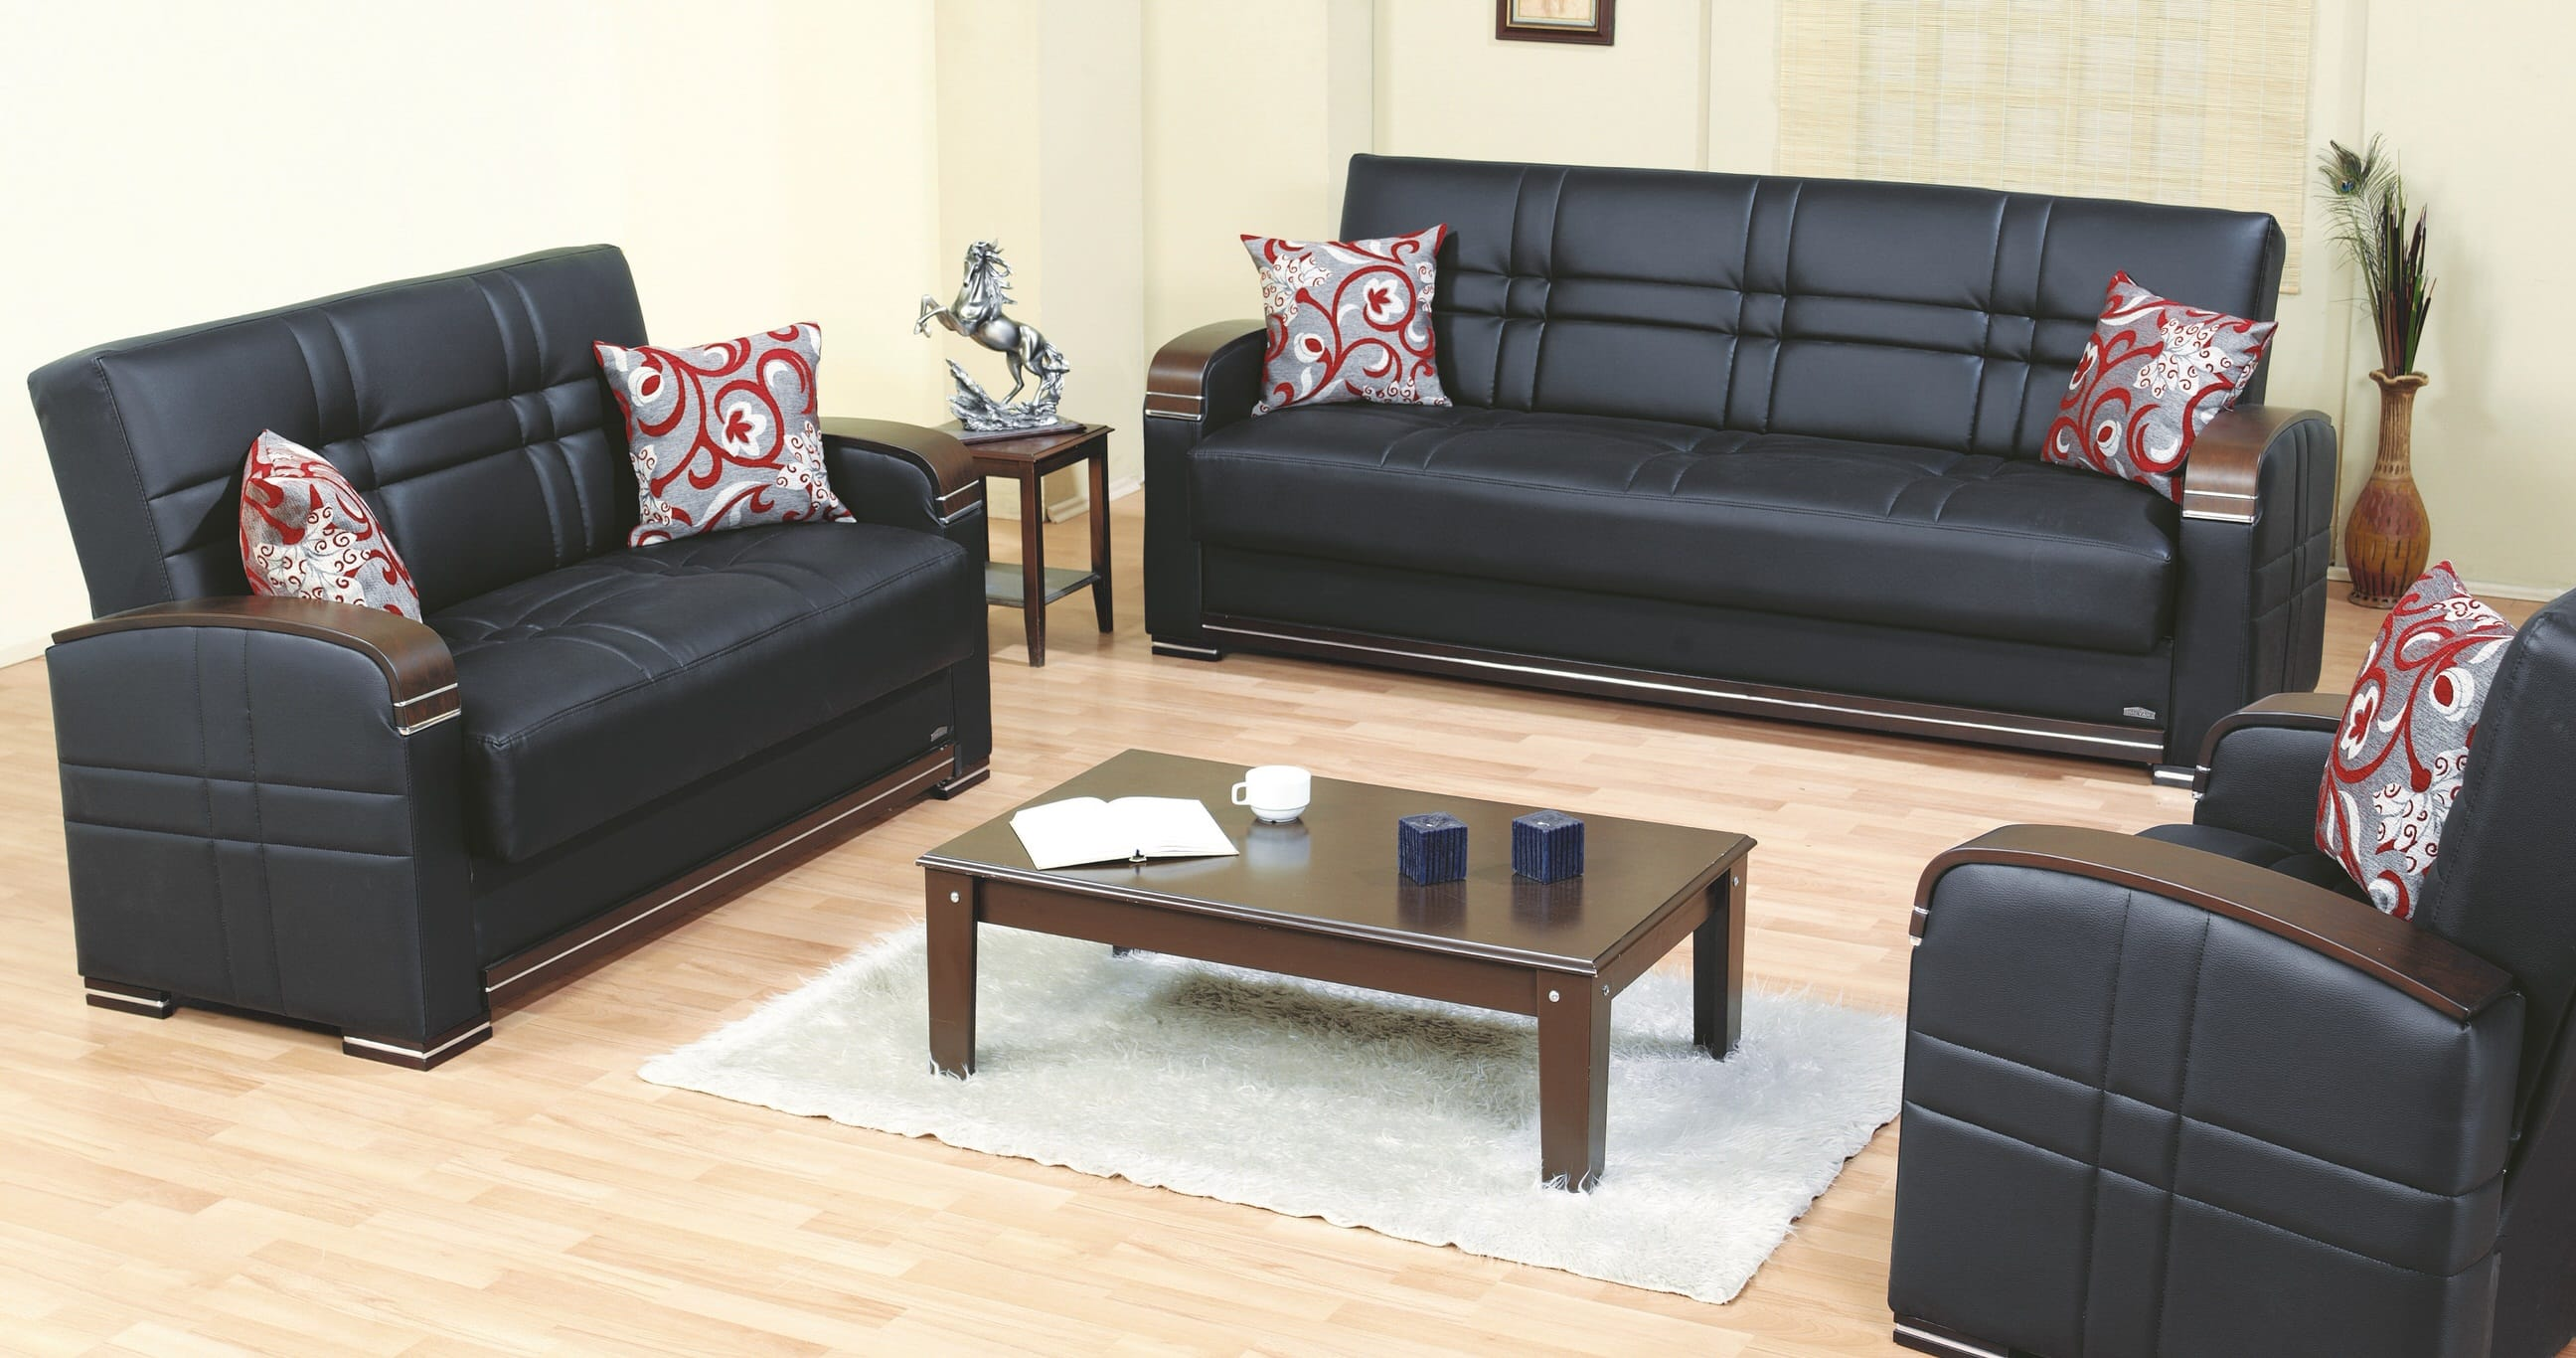 Bronx black leather sofa bed by empire furniture usa for Divan furniture usa